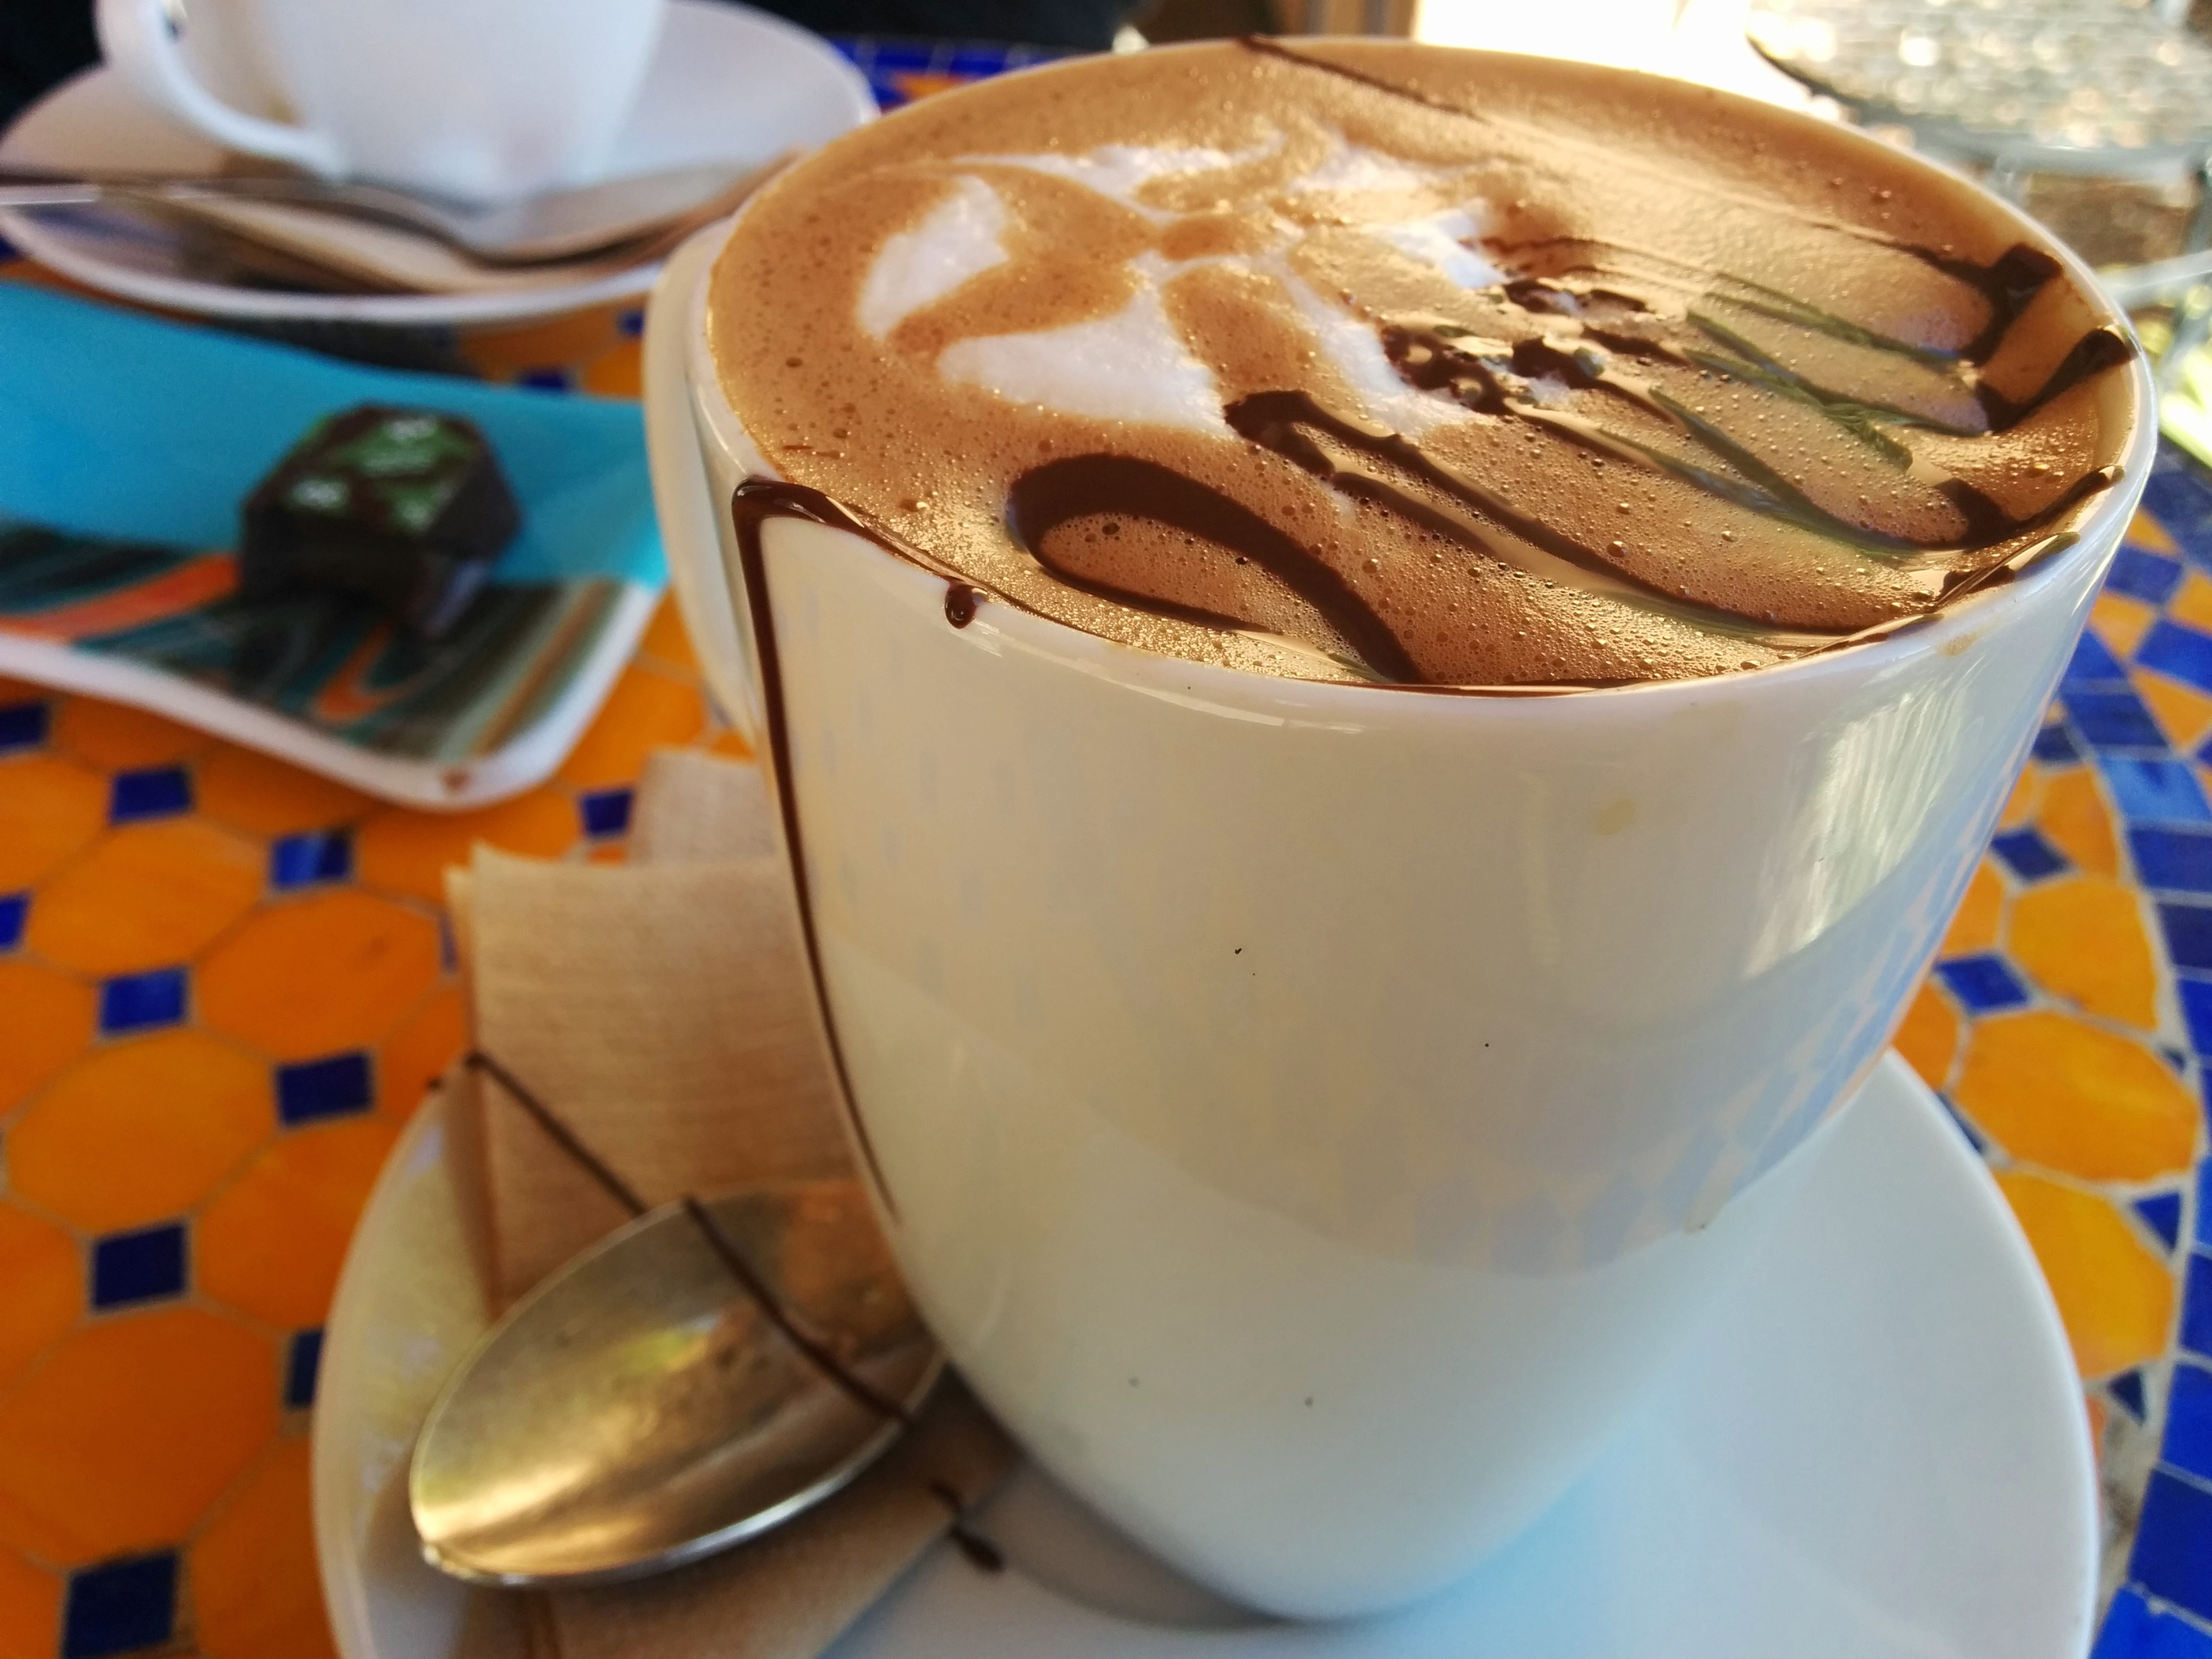 Cafe mocha featuring liquid couverture chocolate!